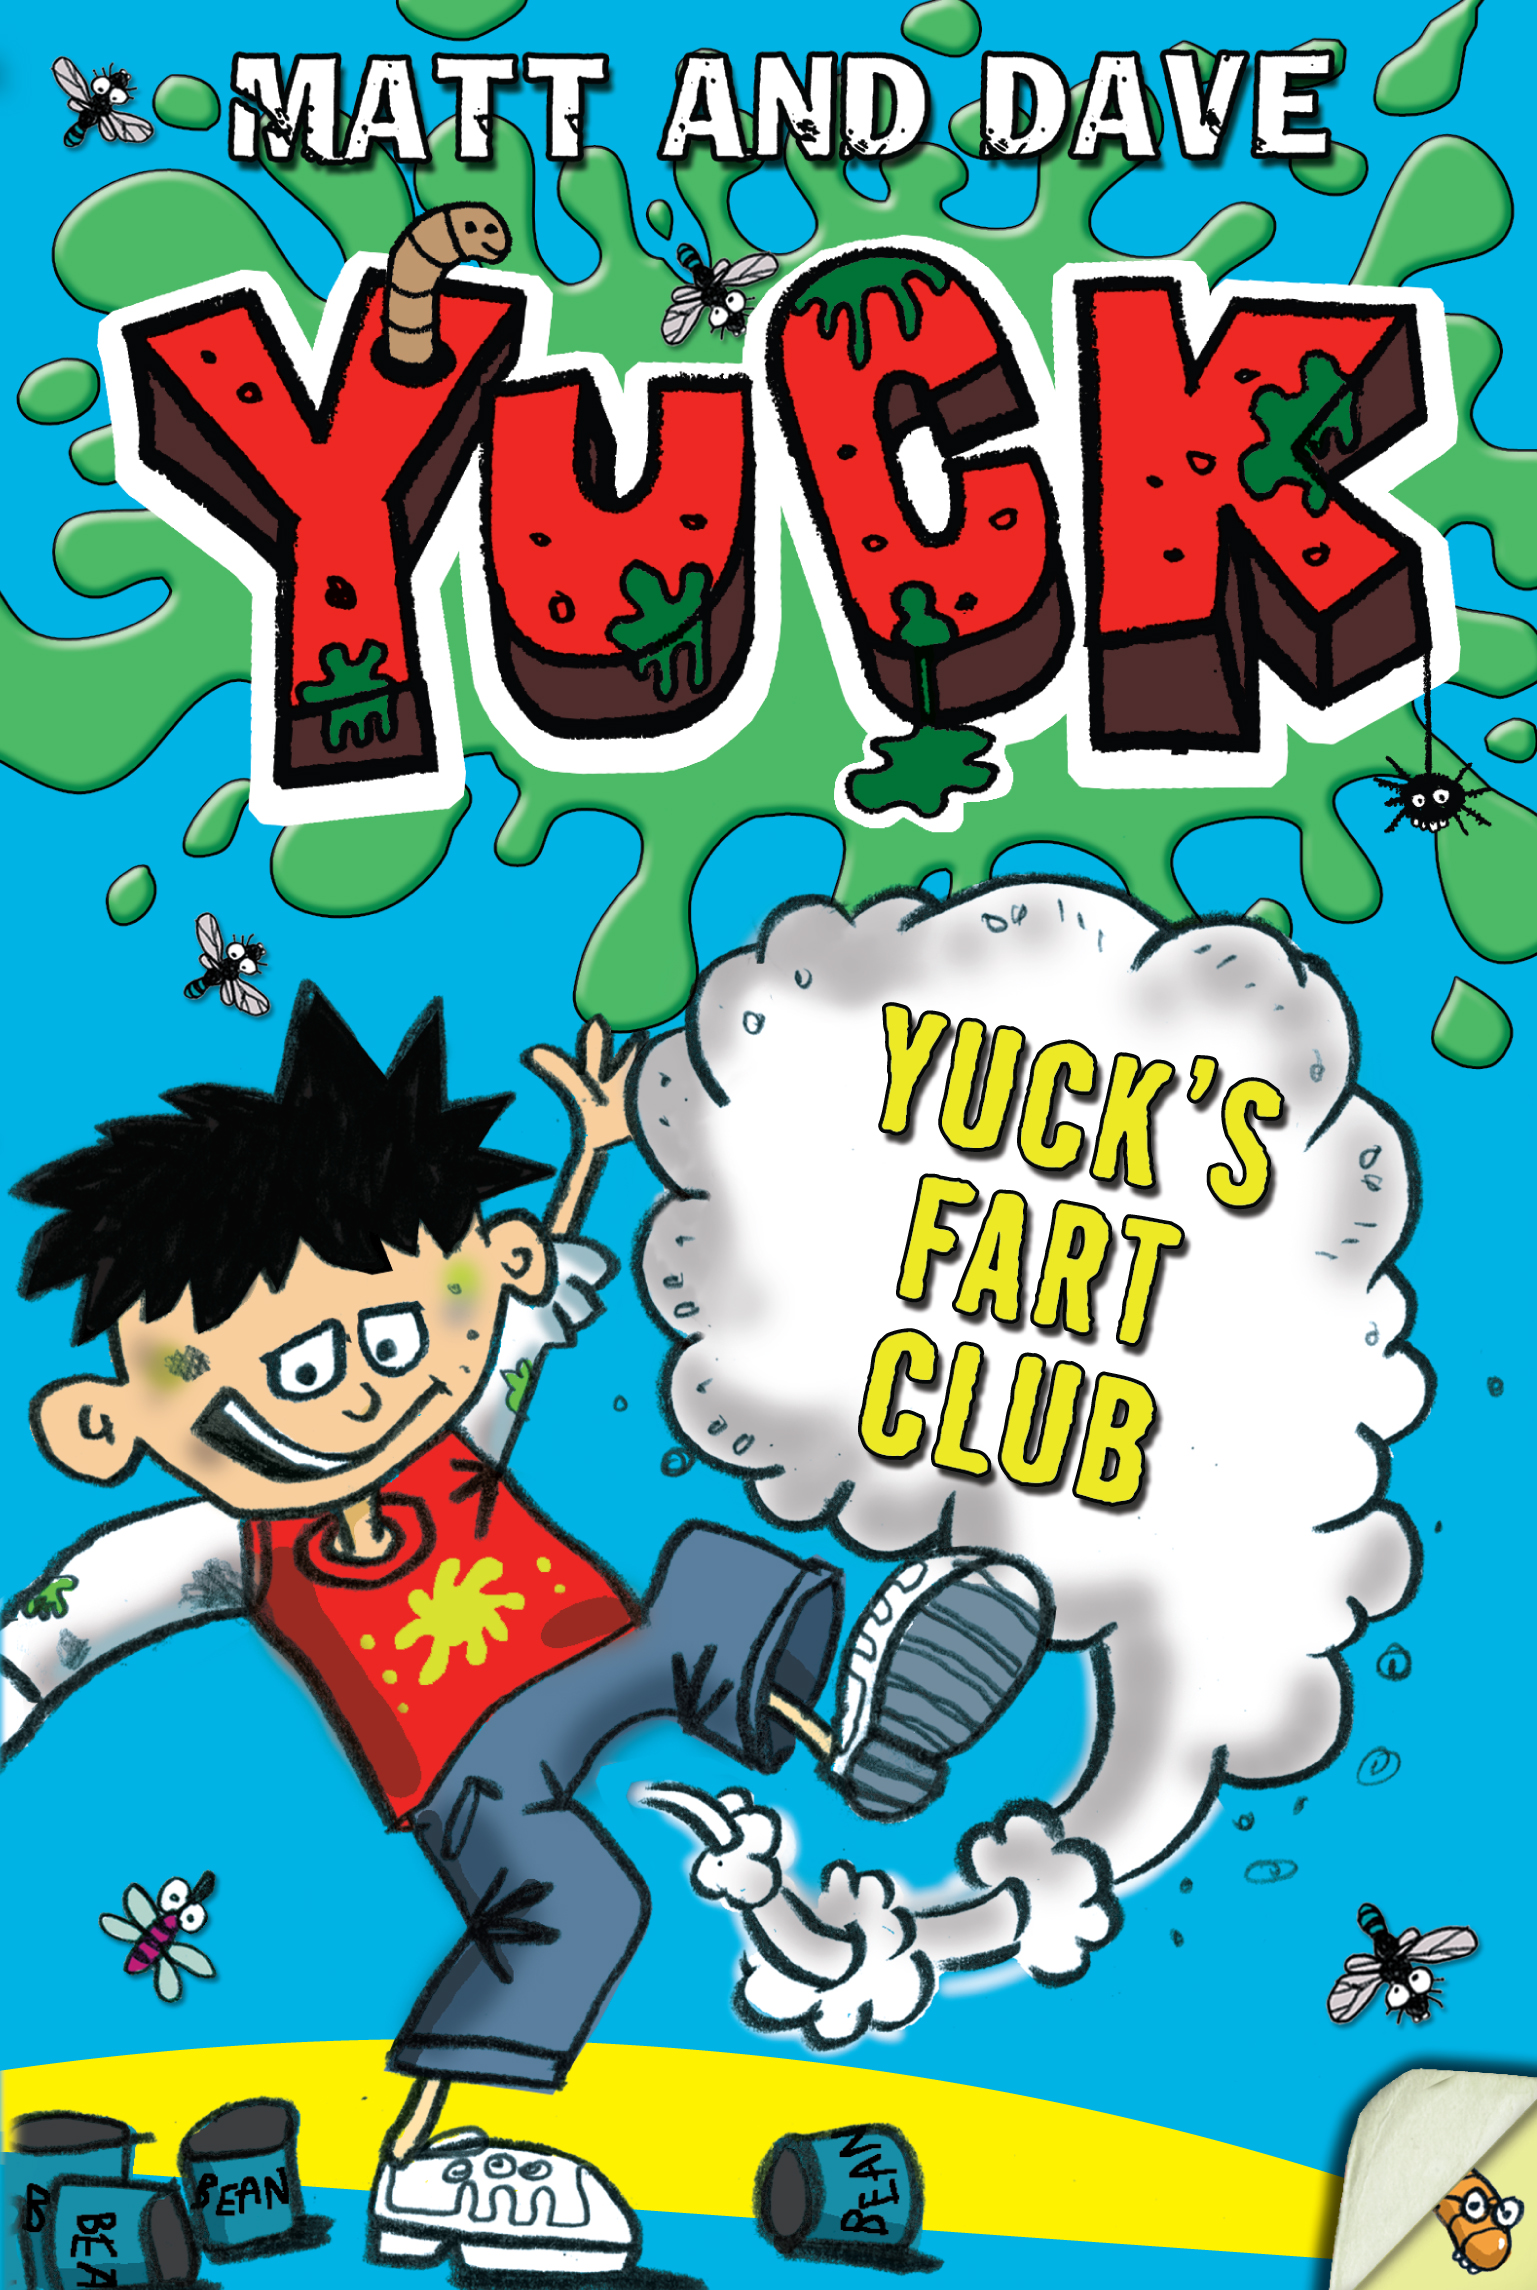 Yuck books by matt and dave and nigel baines from simon schuster yucks fart club fandeluxe PDF